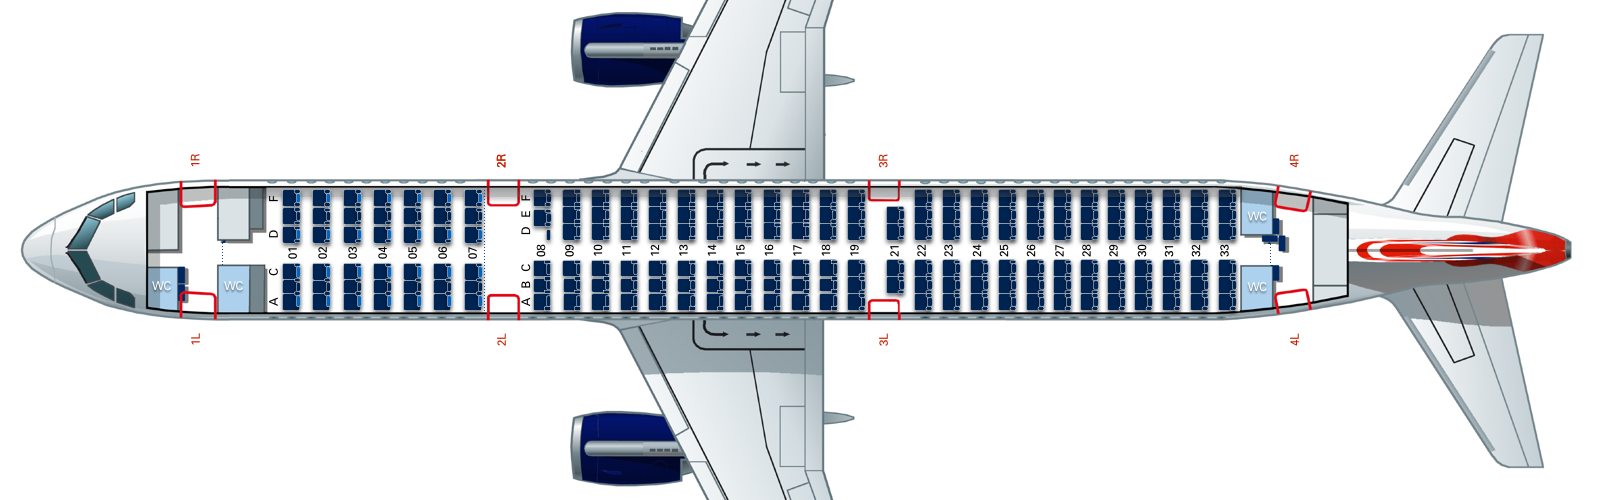 Seating Guide Airbus A321 Short Haul Flyertalk Forums